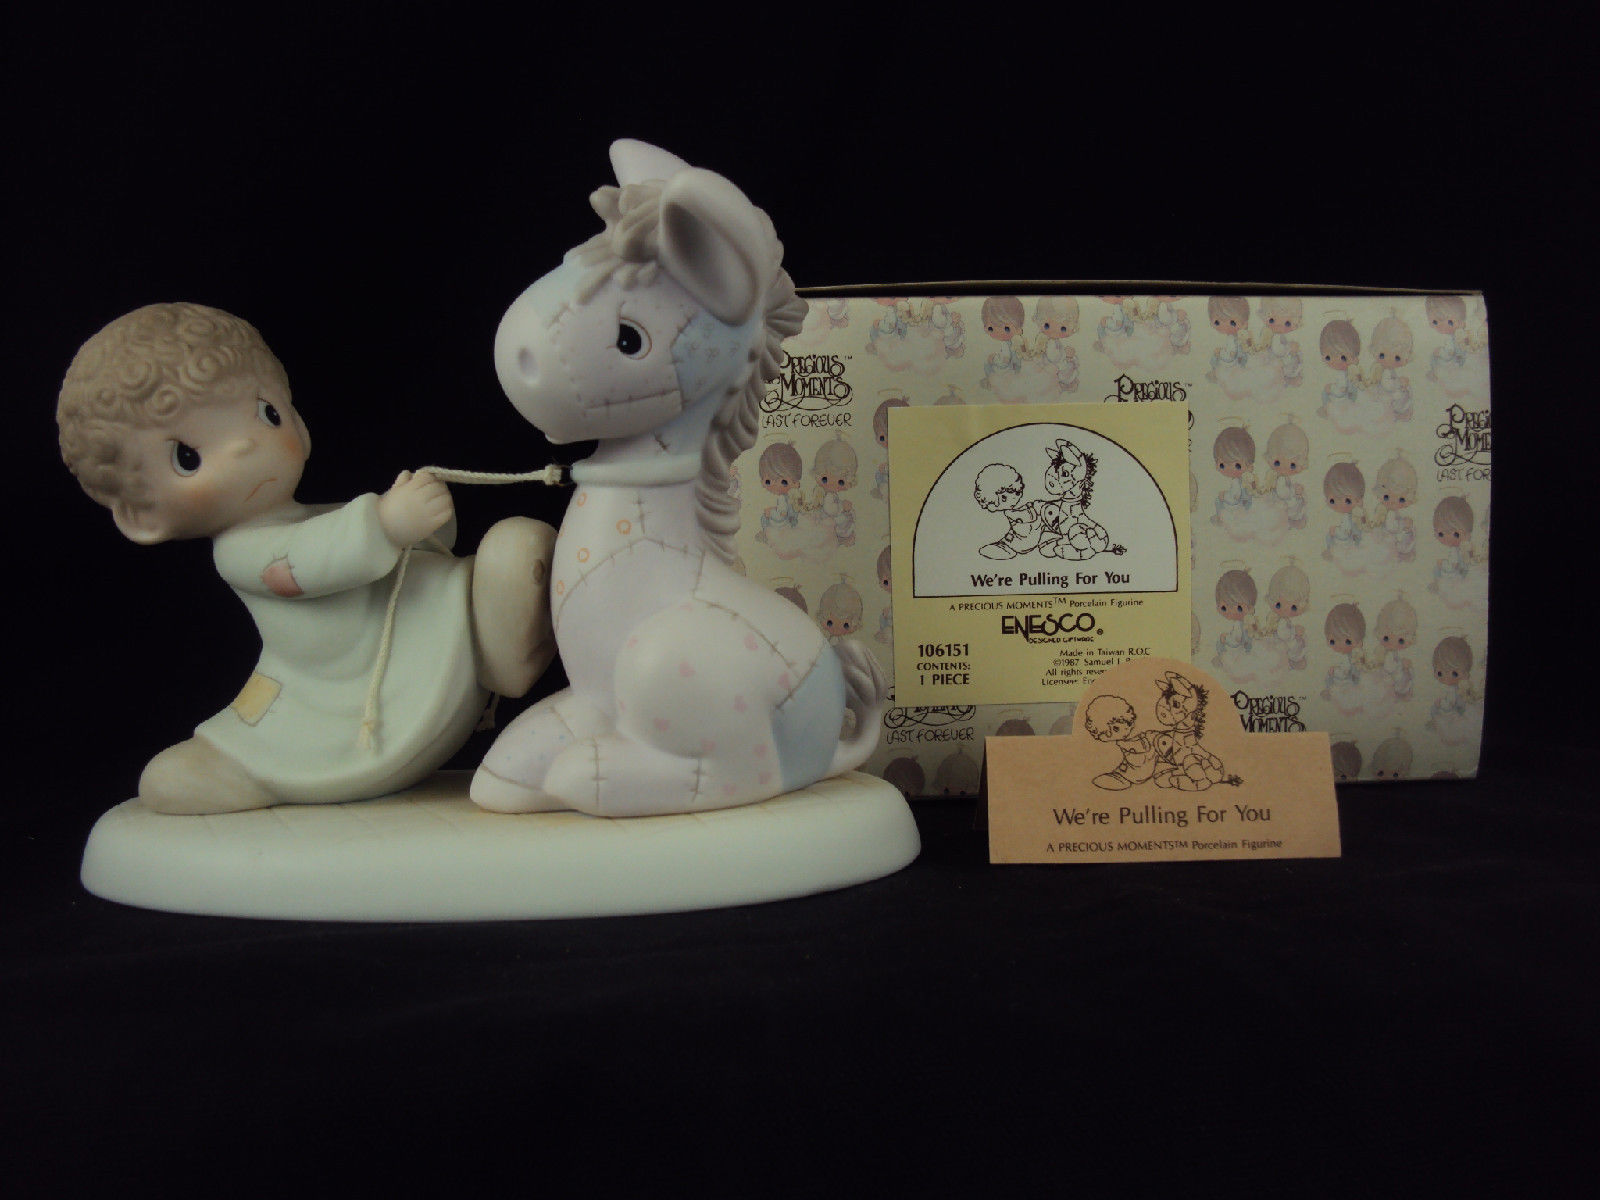 Primary image for Precious Moments Figurine, 106151, We're Pulling For You, Cedar Tree Mark, 1987